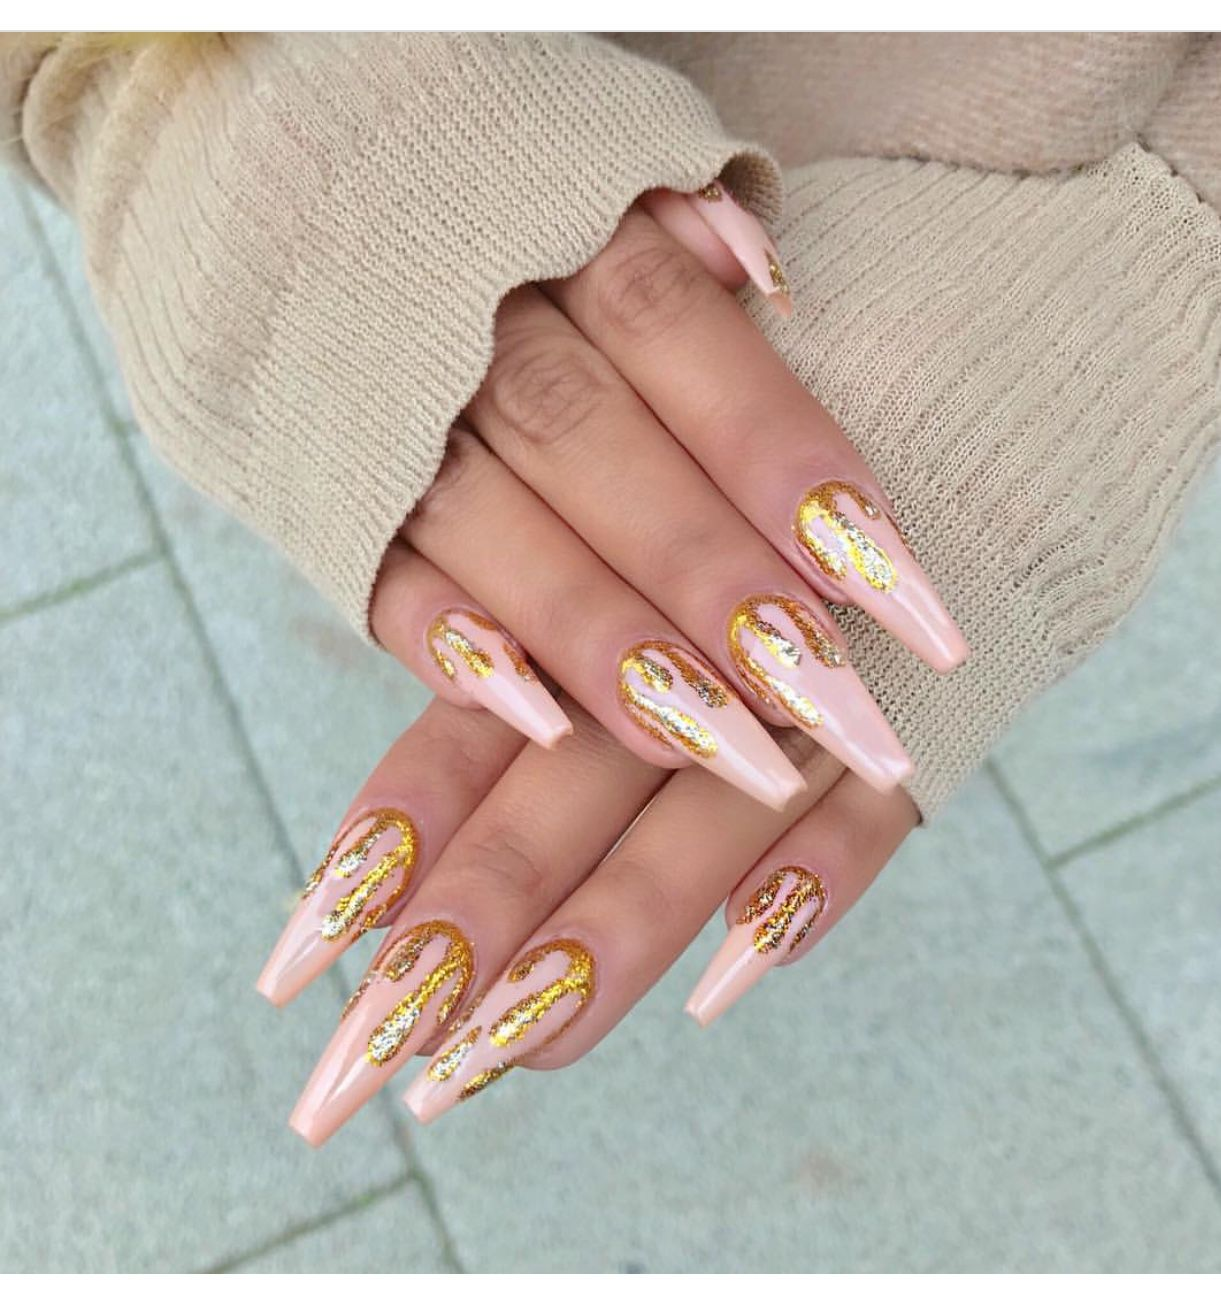 Pinterest Amacias3875 Nails Pinterest Nail Inspo Nail